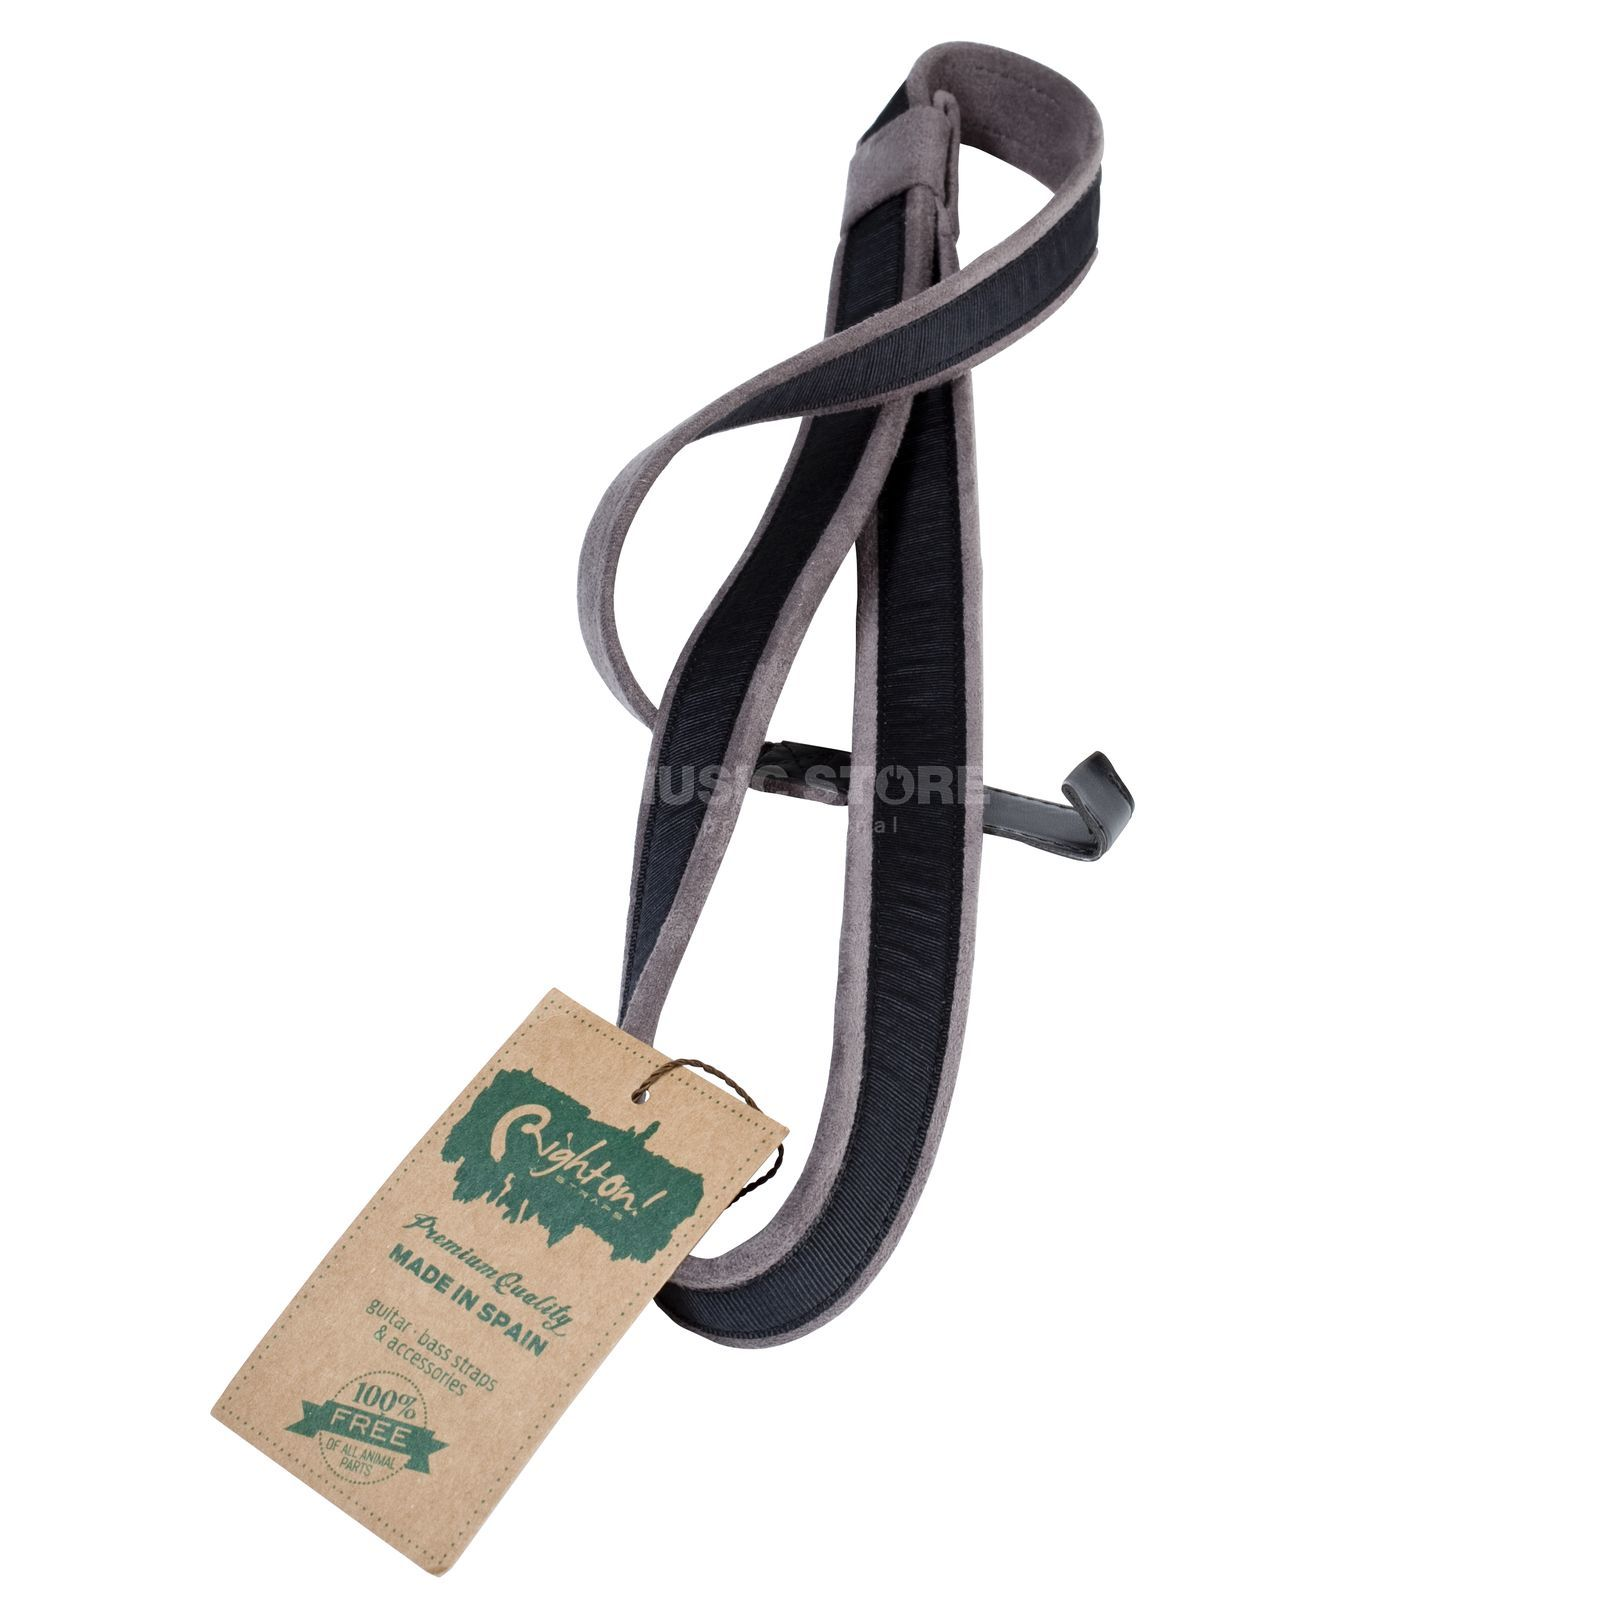 RightOn! Straps Nylon Hook Black Produktbild